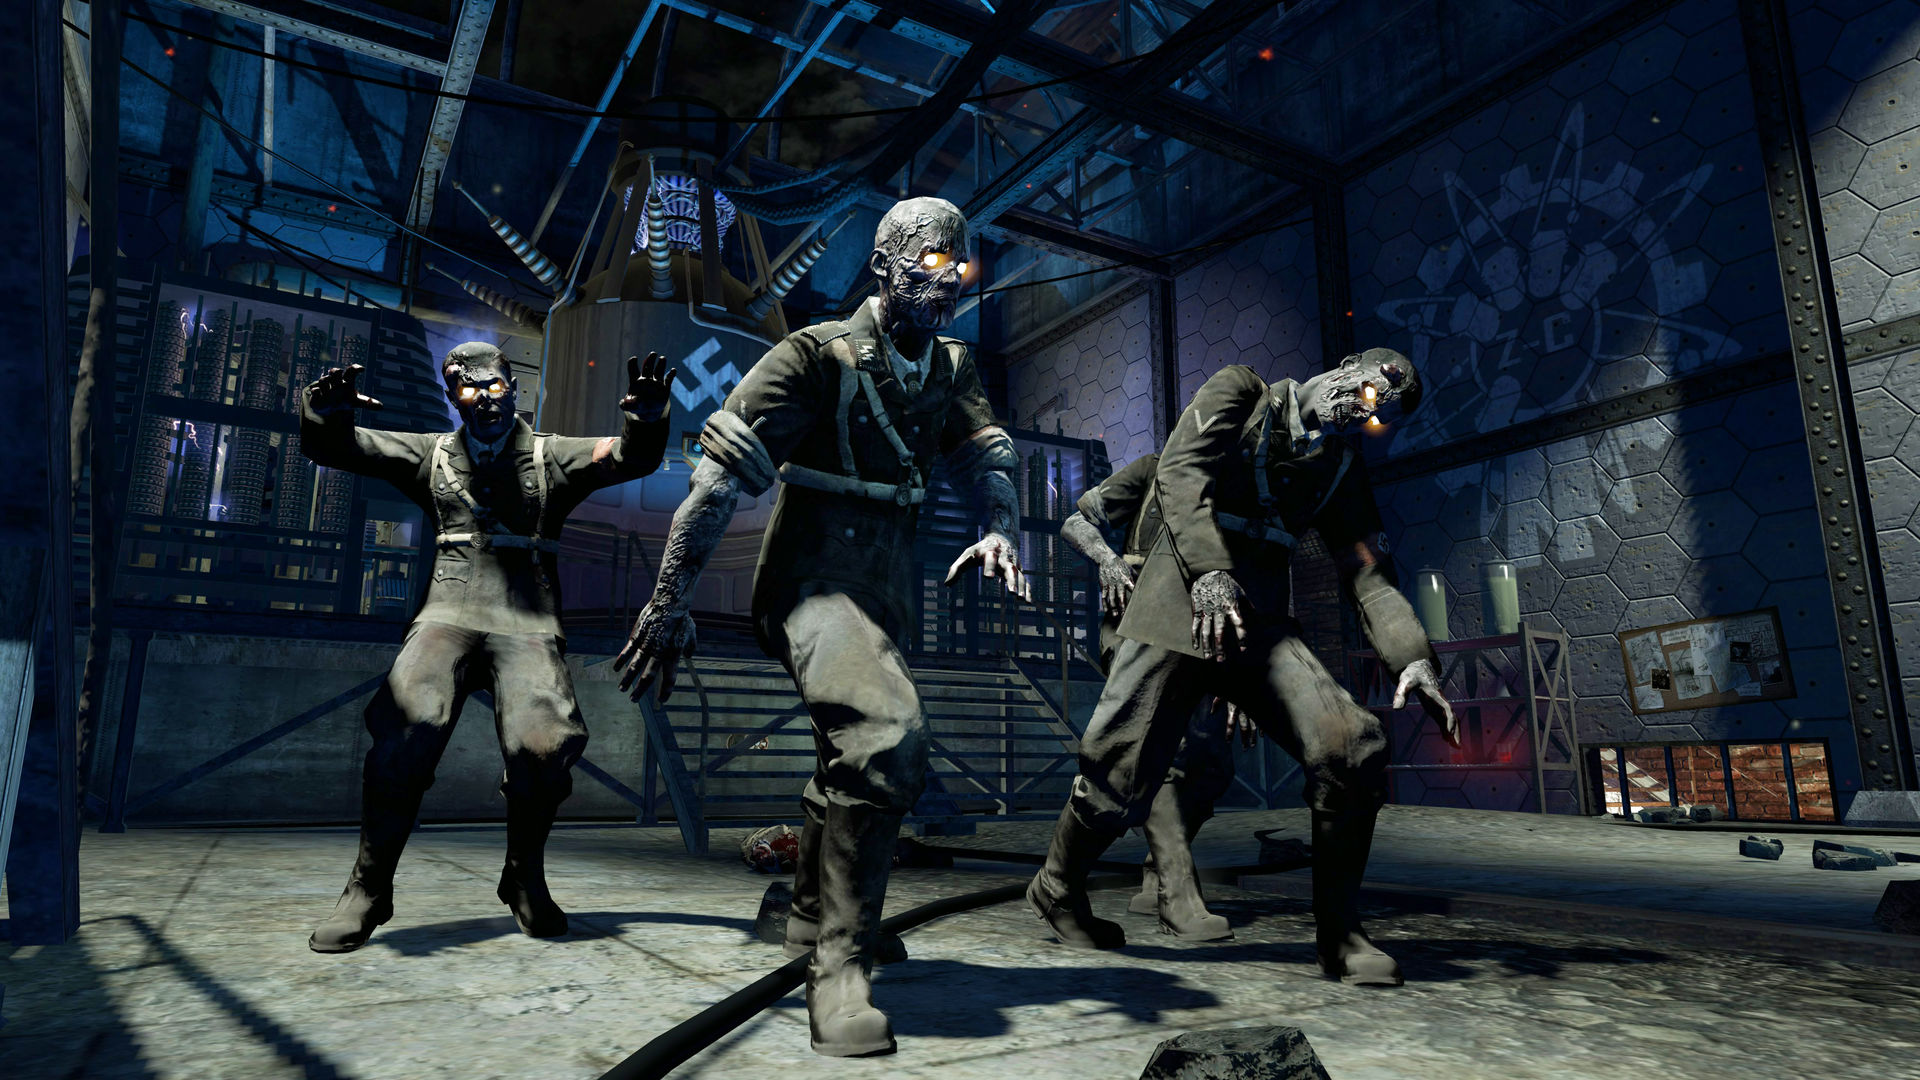 Call of duty zombies photos Ranking Every Call of Duty Zombies Map Best to Worst - Ranker